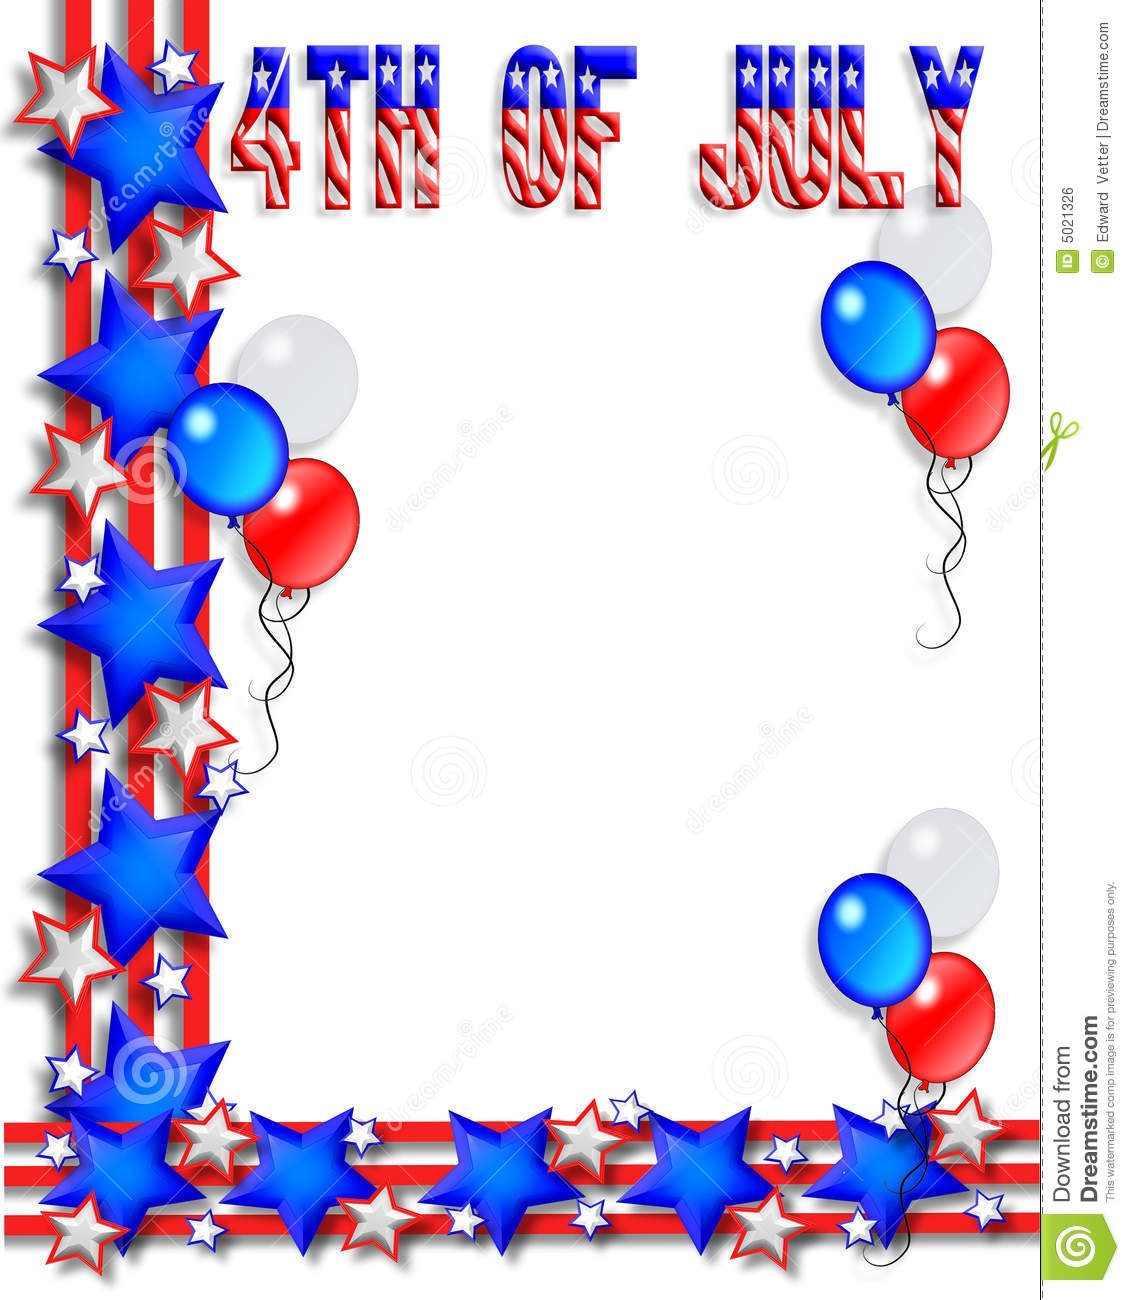 independence day clipart free border - Clipground